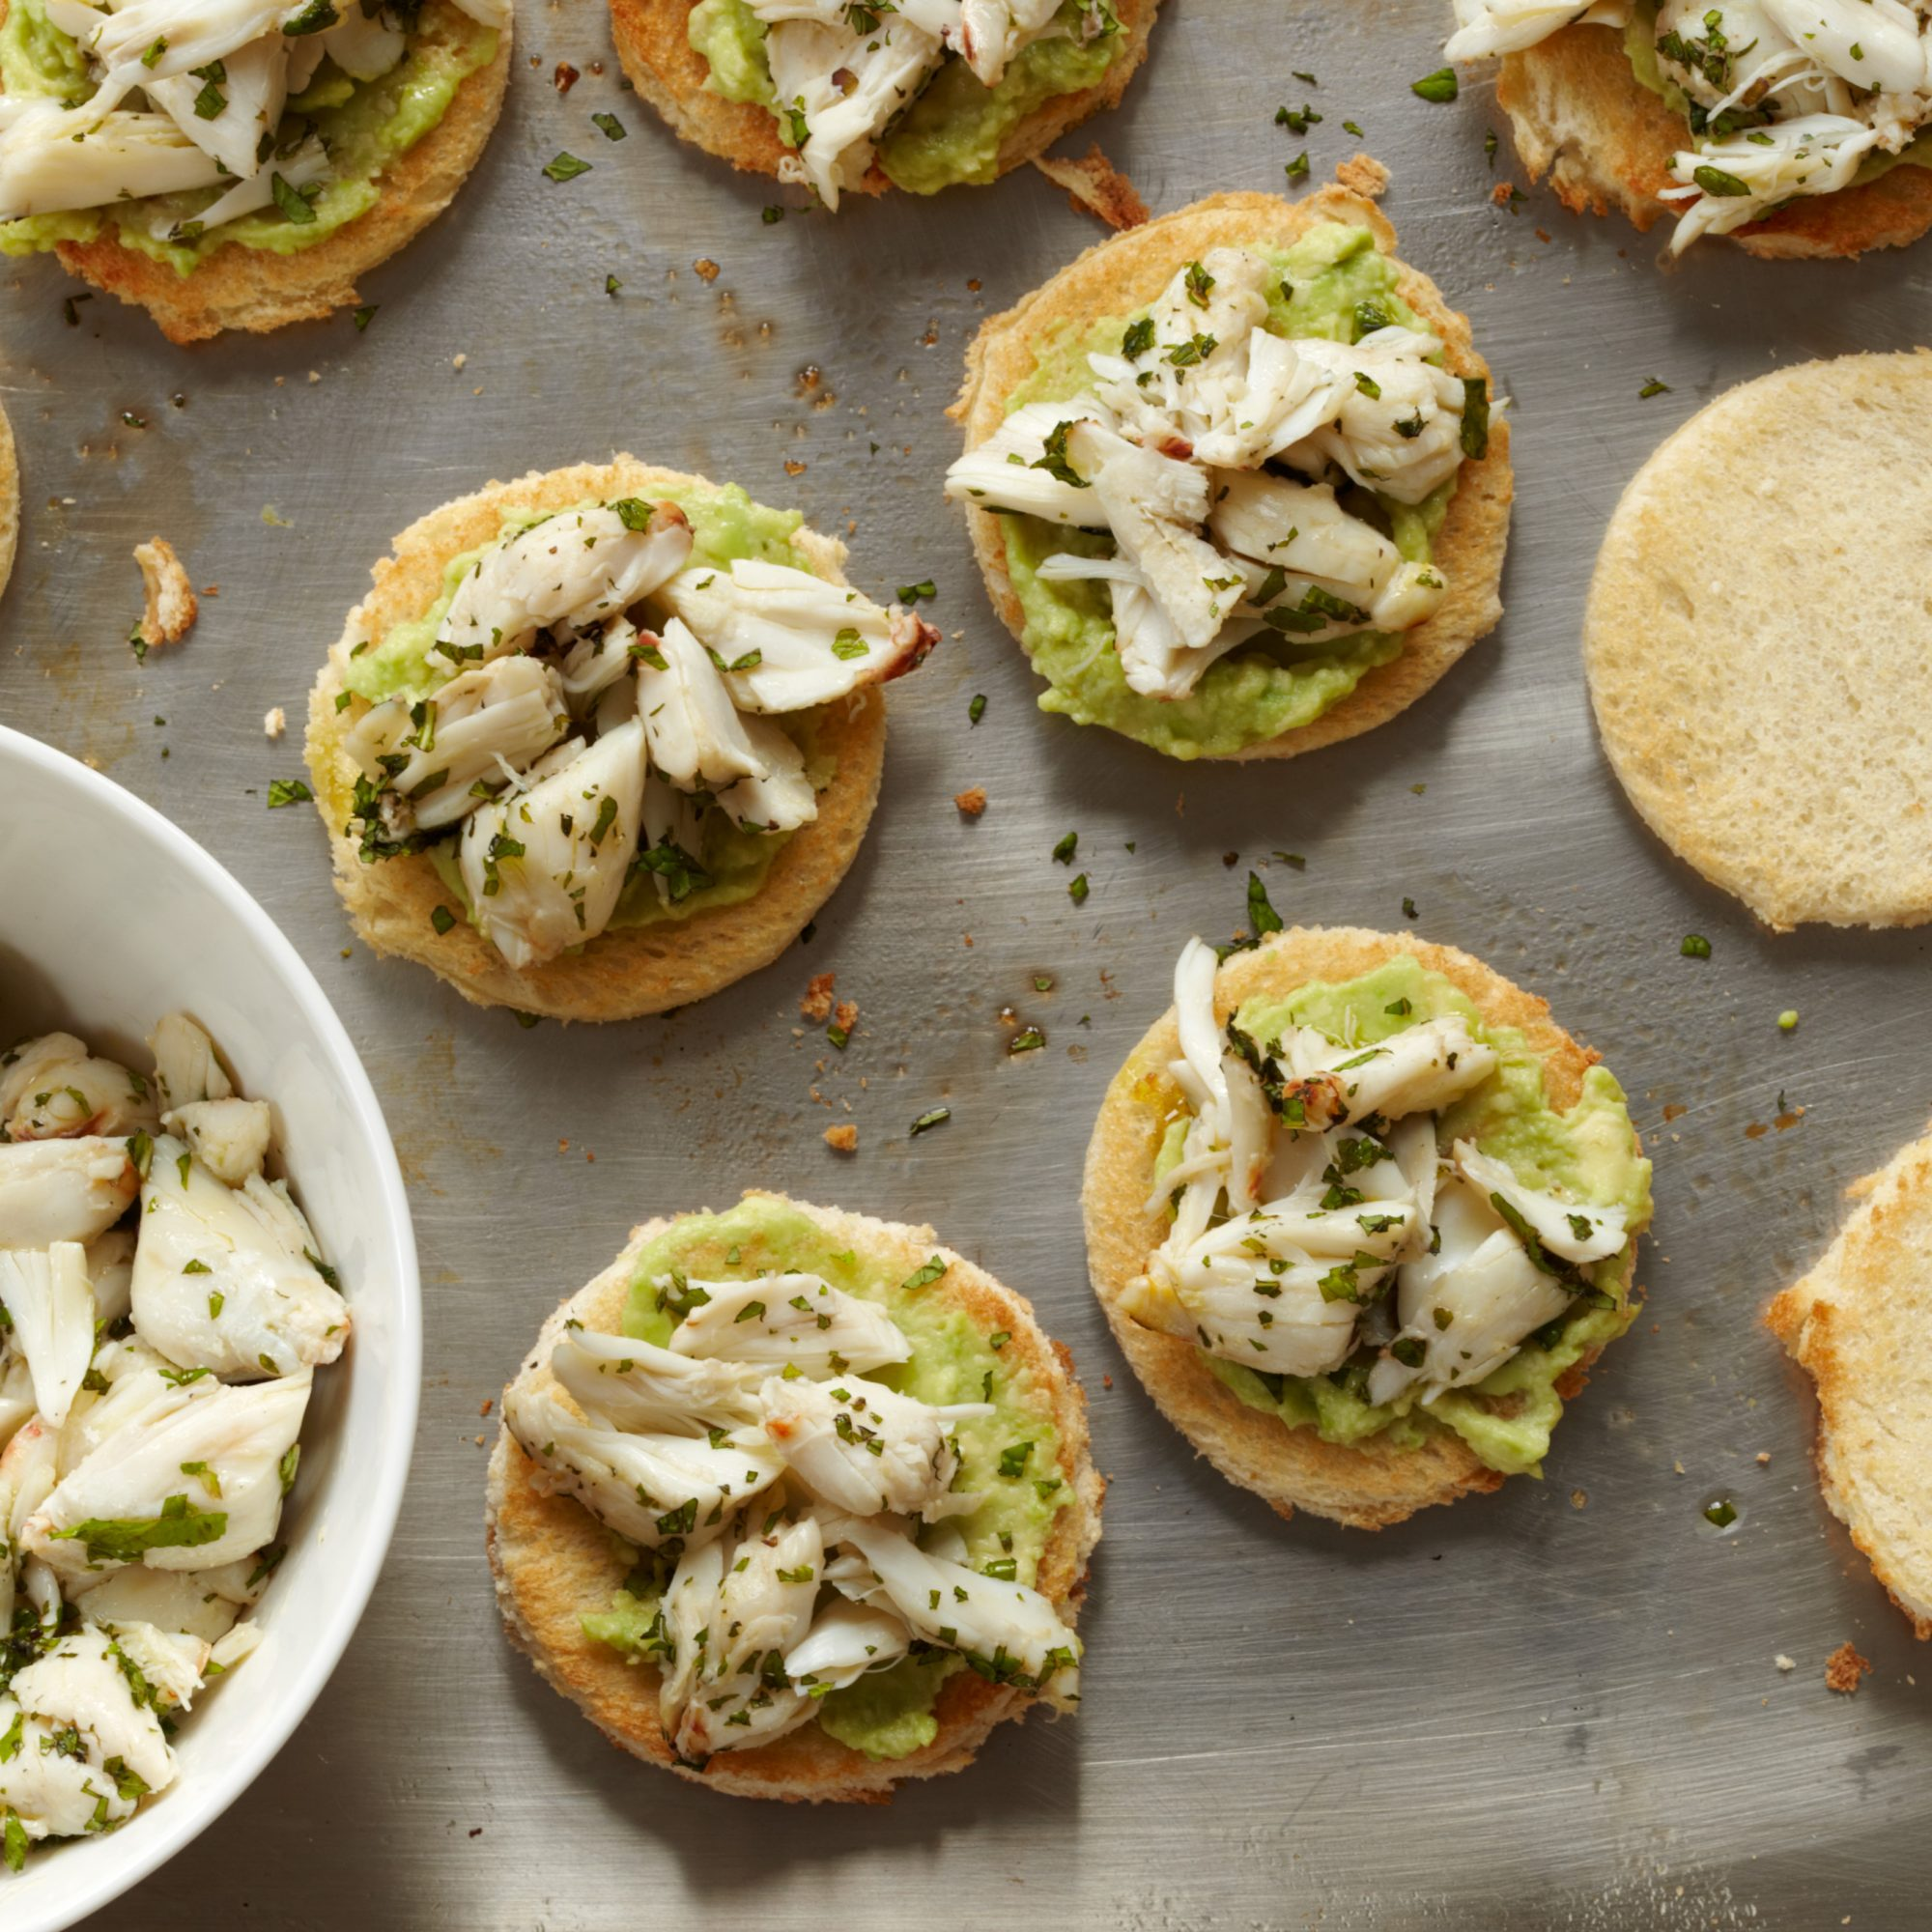 201012-r-crab-avocado-toasts.jpg